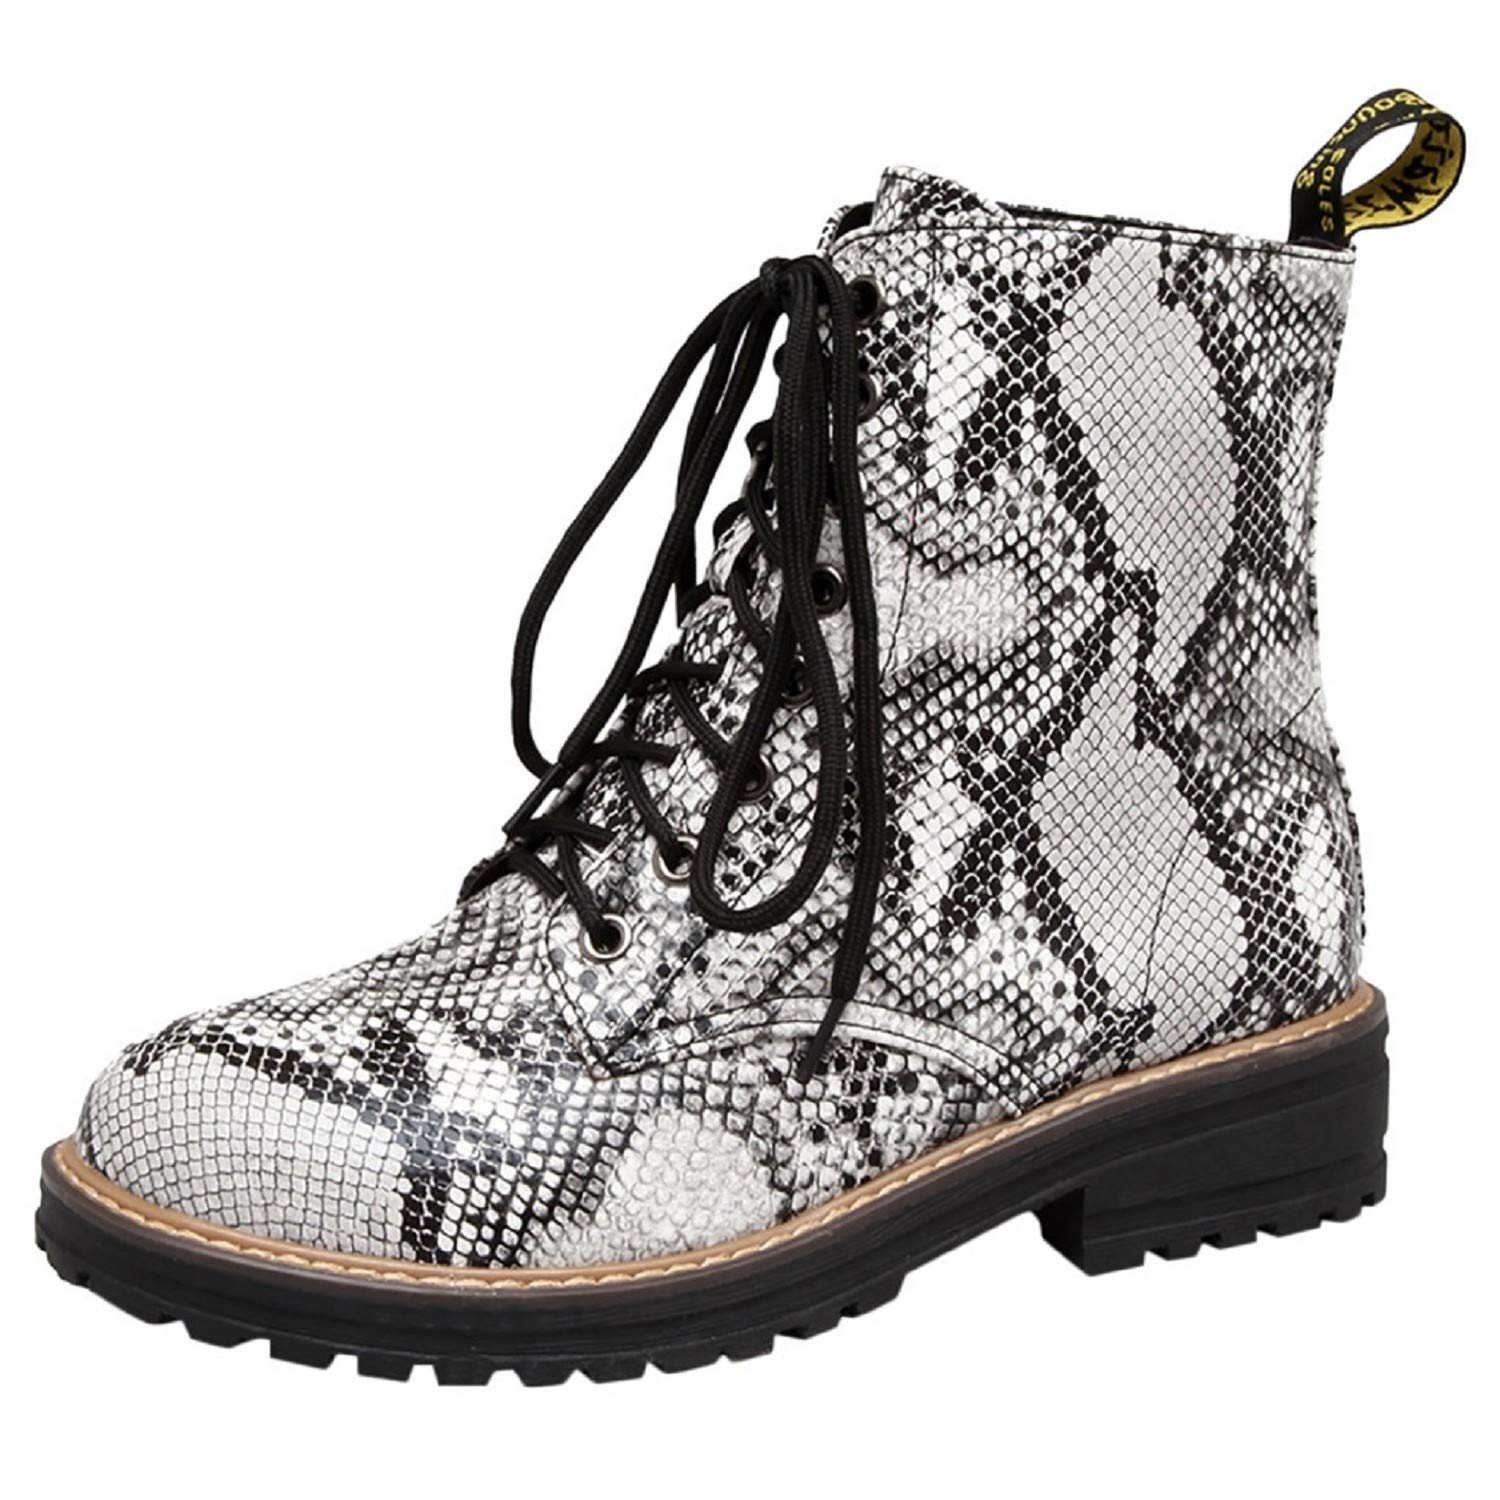 Women Snakeskin Print Boots,Tsmile Flat Platform Lace Up PU Leather Slip On Low Heel Non-Slip Rubber Chic Booties Silver by Tsmile Winter